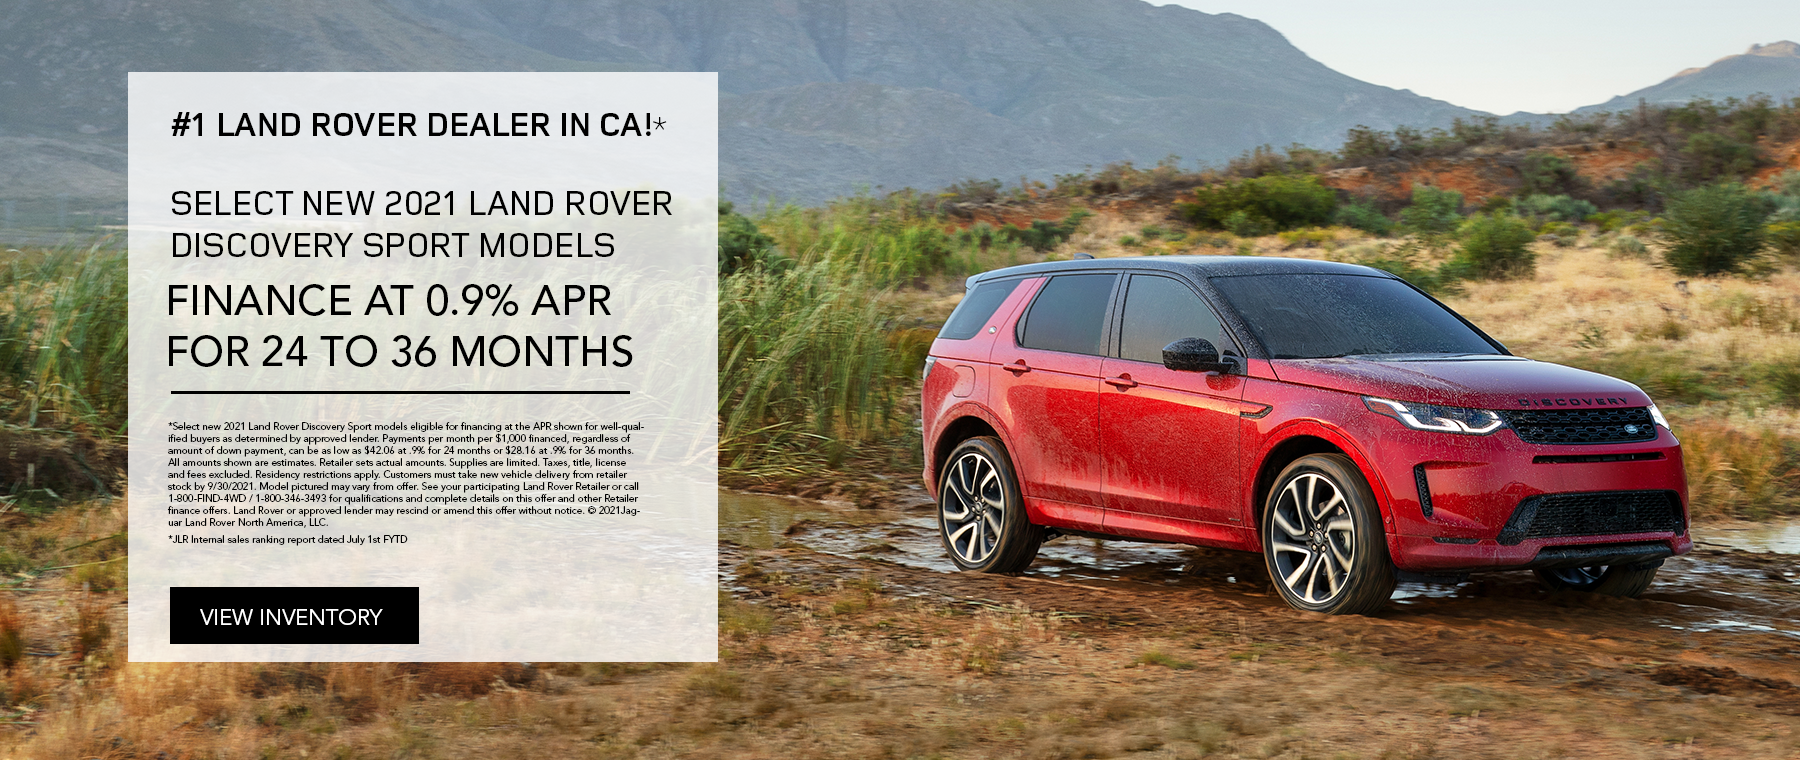 NEW 2021 LAND ROVER DISCOVERY SPORT S. $529 PER MONTH. 36 MONTH LEASE TERM. $3,995 CASH DUE AT SIGNING. $0 SECURITY DEPOSIT. 10,000 MILES PER YEAR. EXCLUDES RETAILER FEES, TAXES, TITLE AND REGISTRATION FEES, PROCESSING FEE AND ANY EMISSION TESTING CHARGE. OFFER ENDS 9/30/2021.